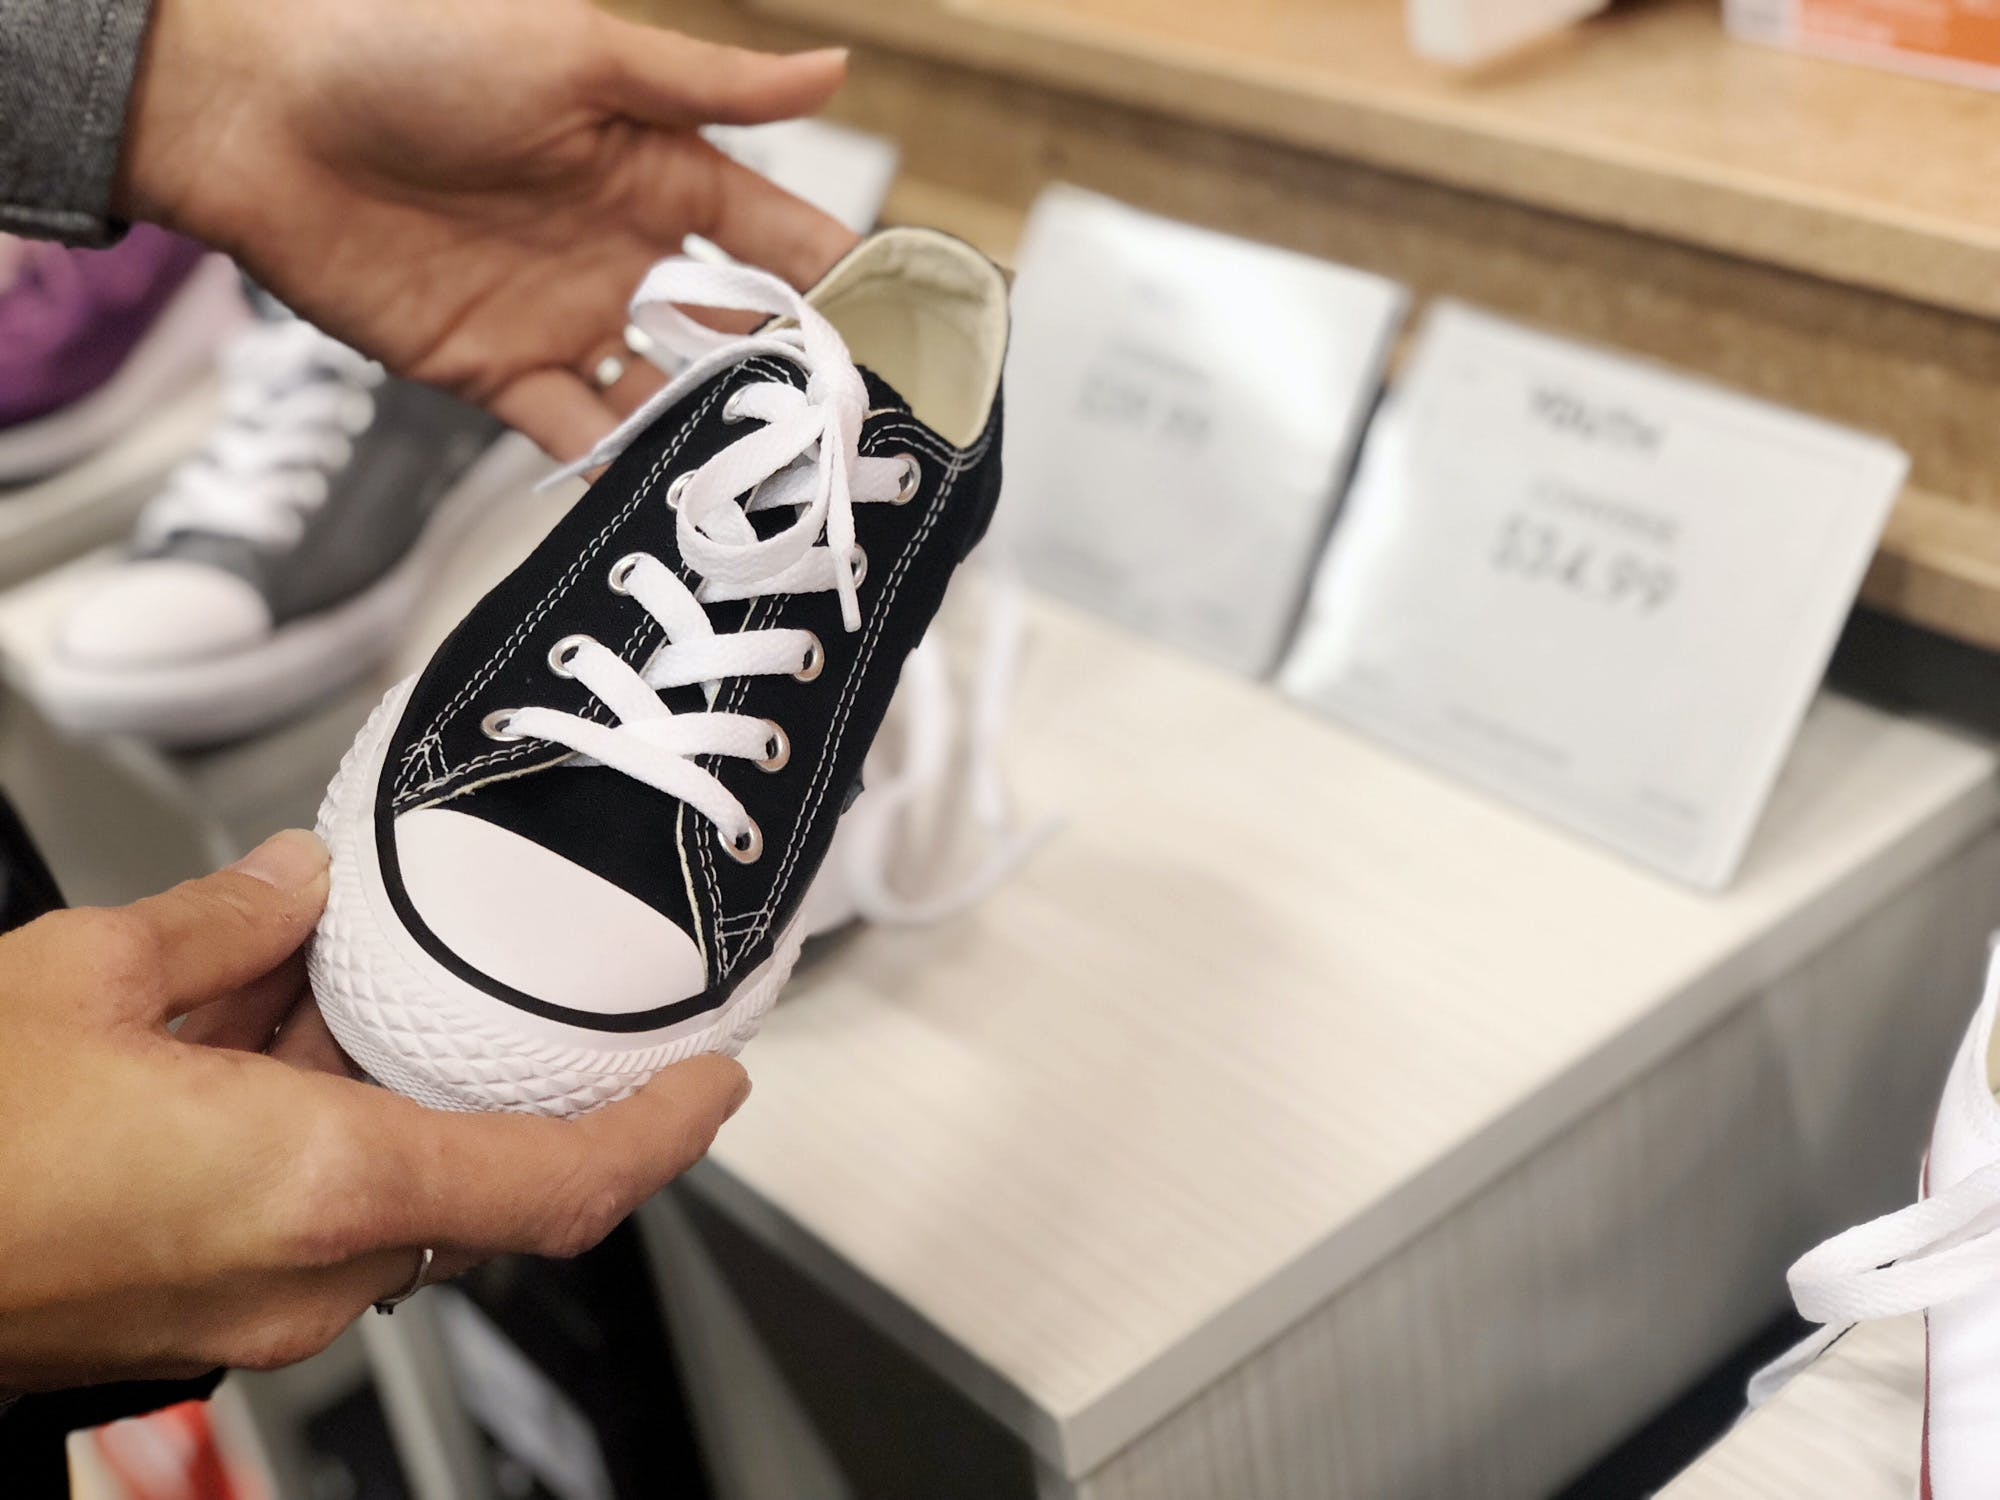 15 Converse Sales Tips and Tricks To